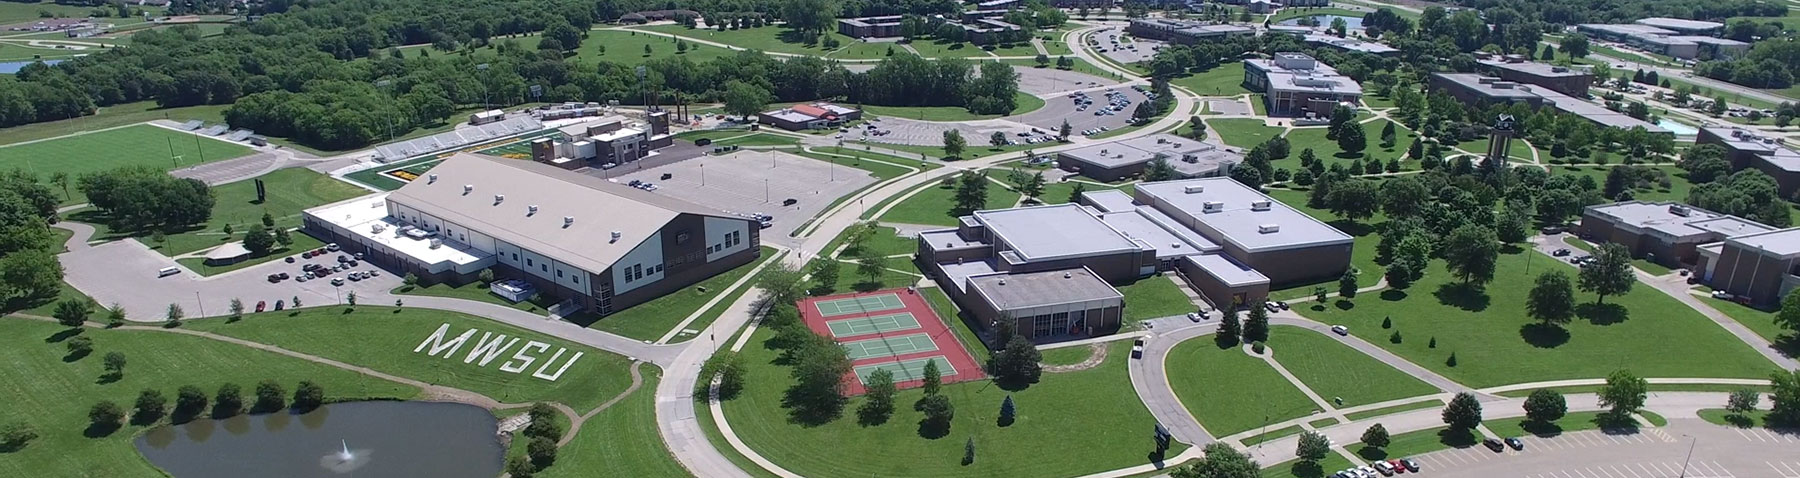 Aerial view of MWSU campus